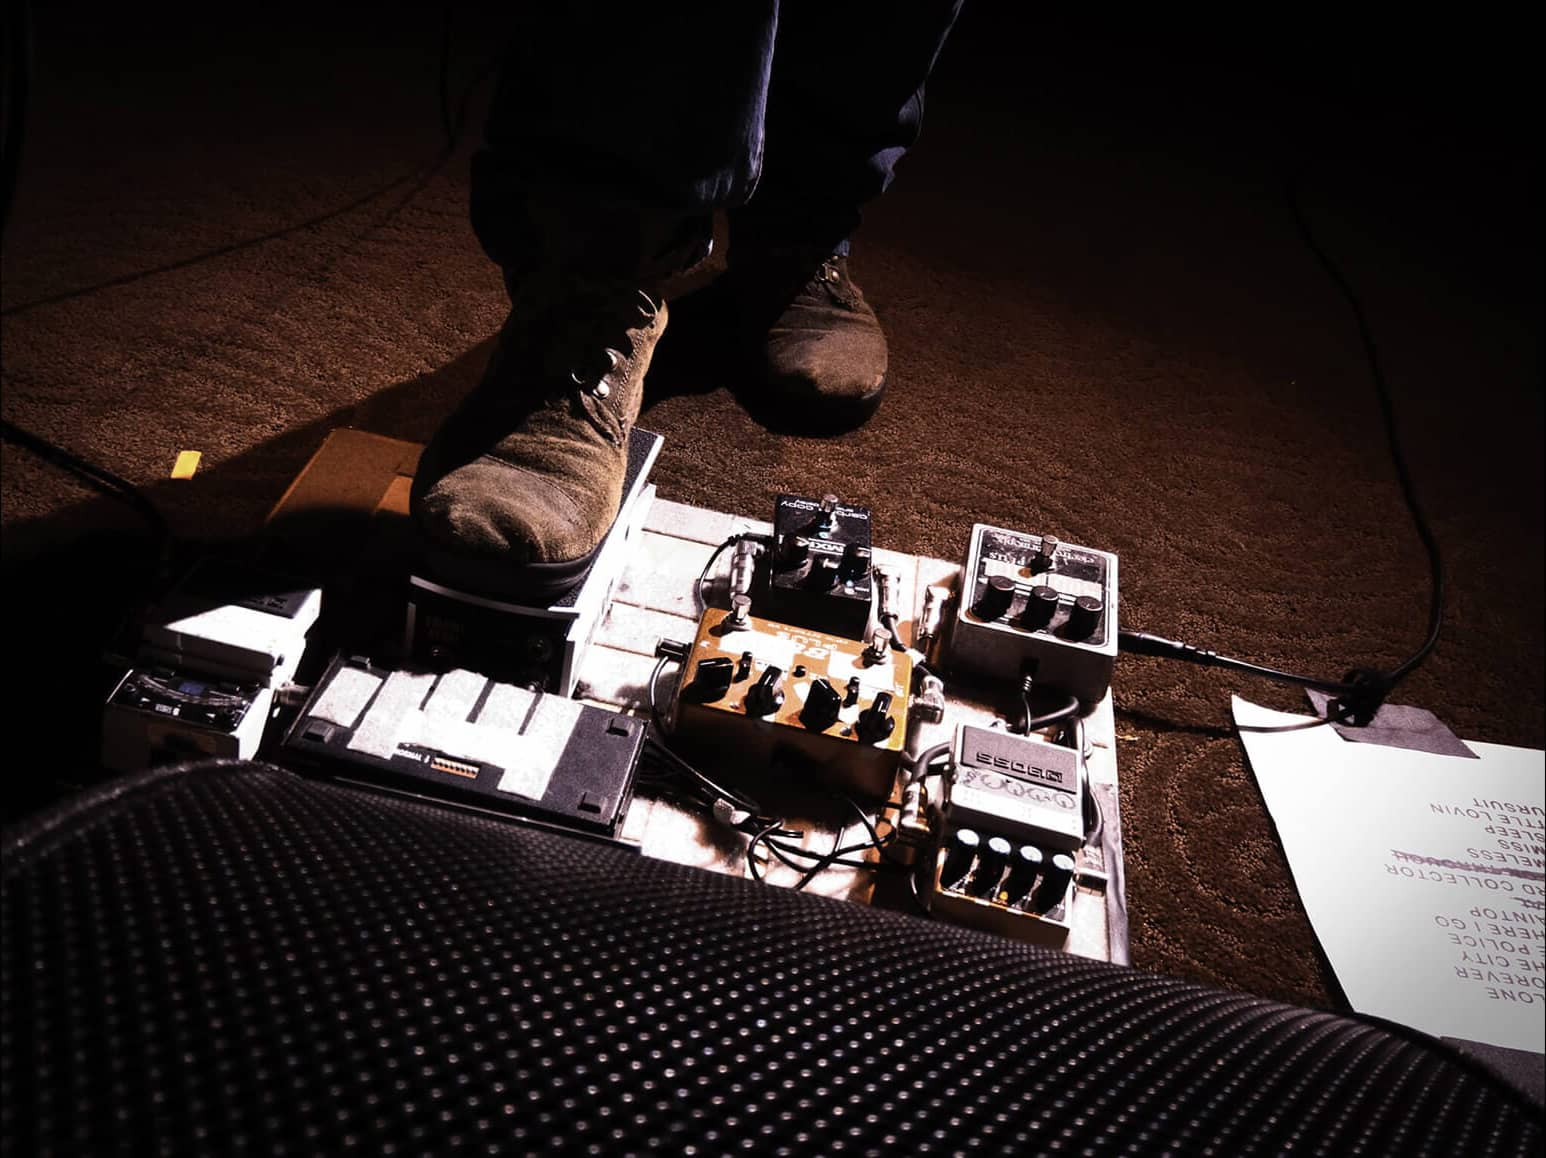 Lissie pedal board and set list